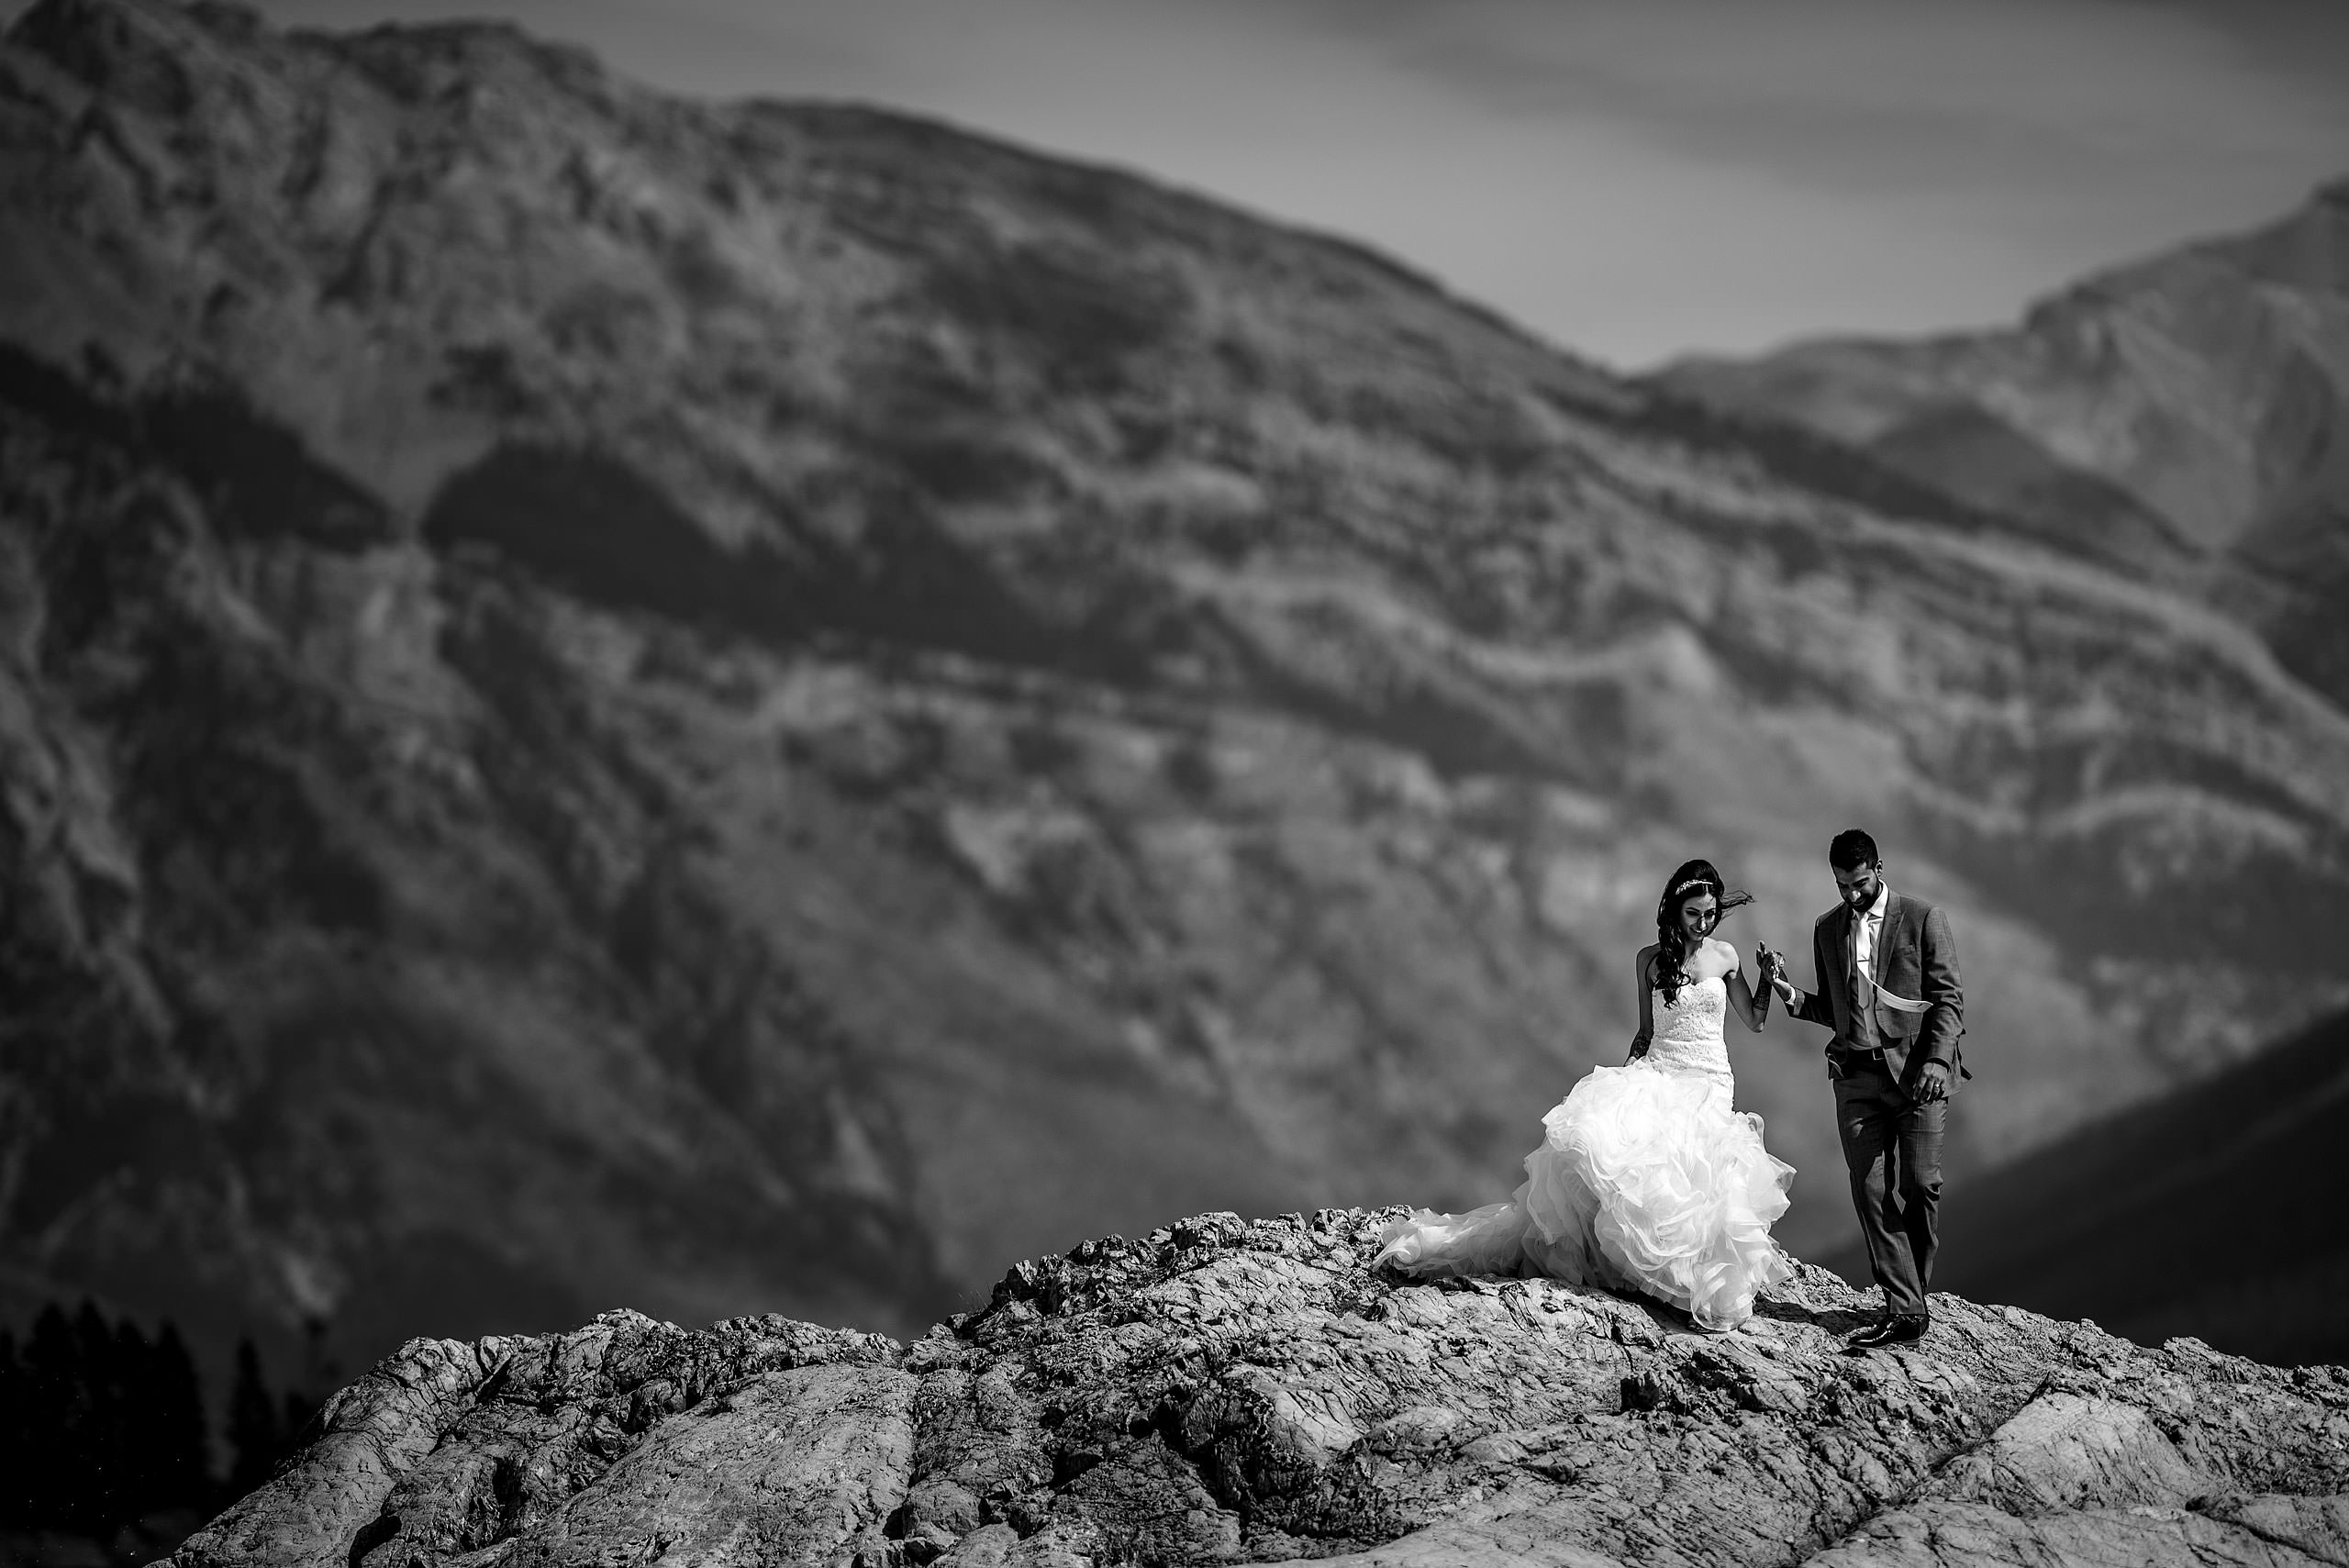 a bride and groom walking down from a rock by Calgary Banff Wedding Photographer Sean LeBlanc